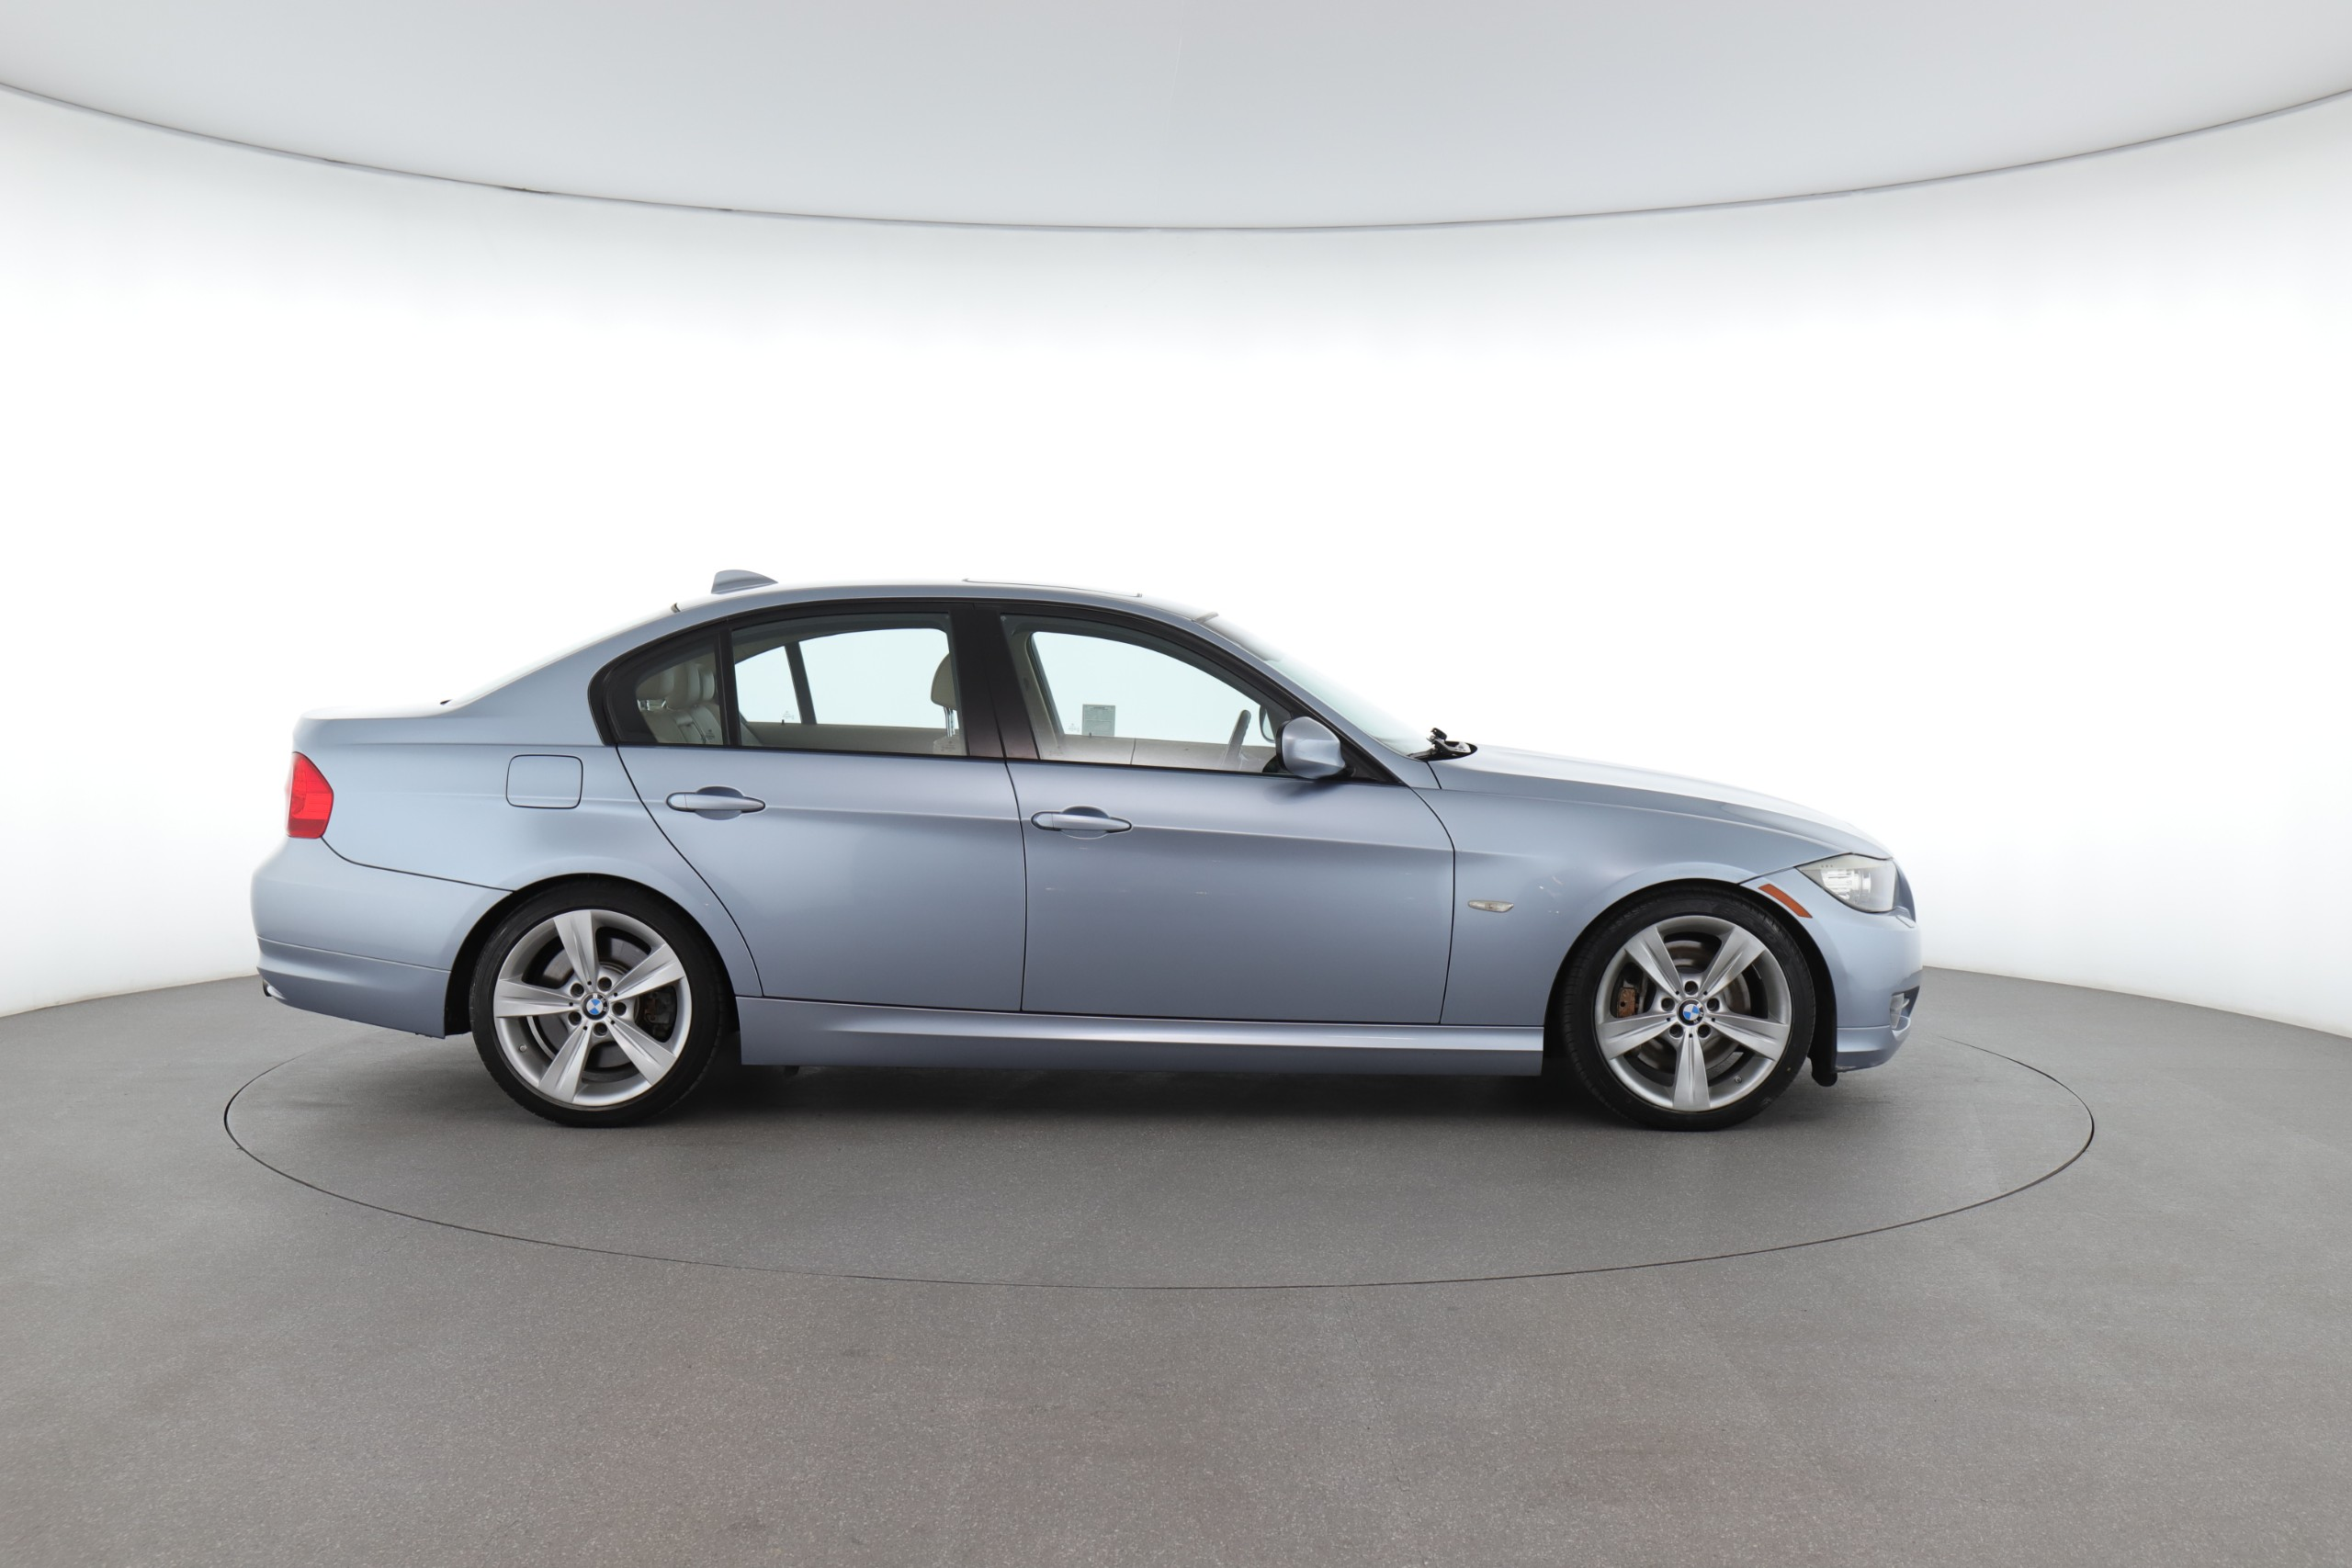 All About BMW 3 Series: Why Should You Get this Car